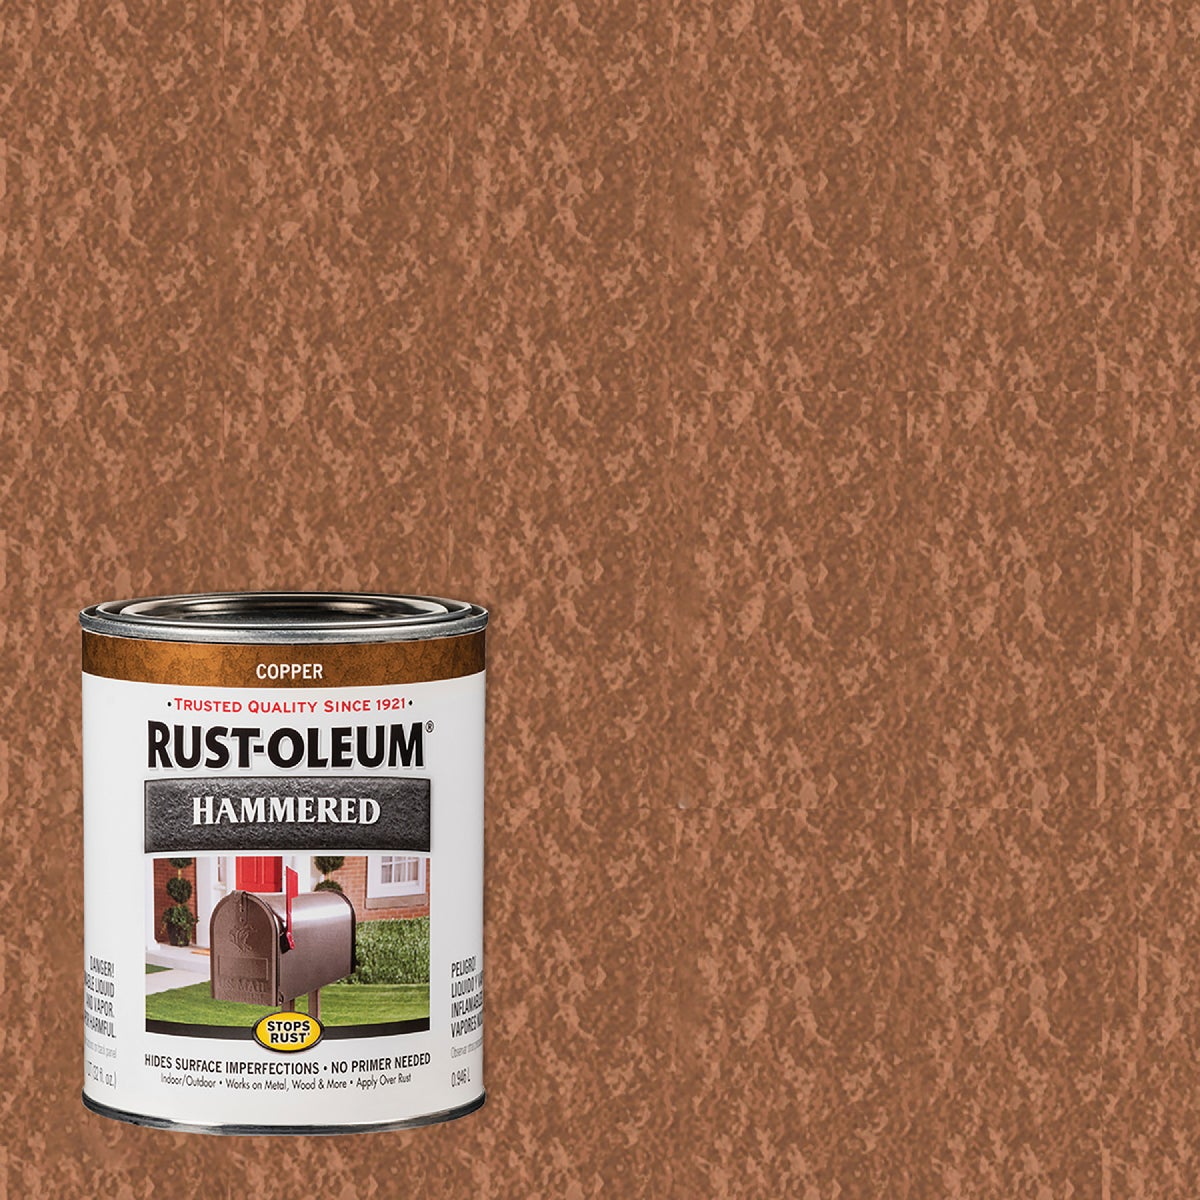 COPPER HAMMERED PAINT - 239074 by Rustoleum